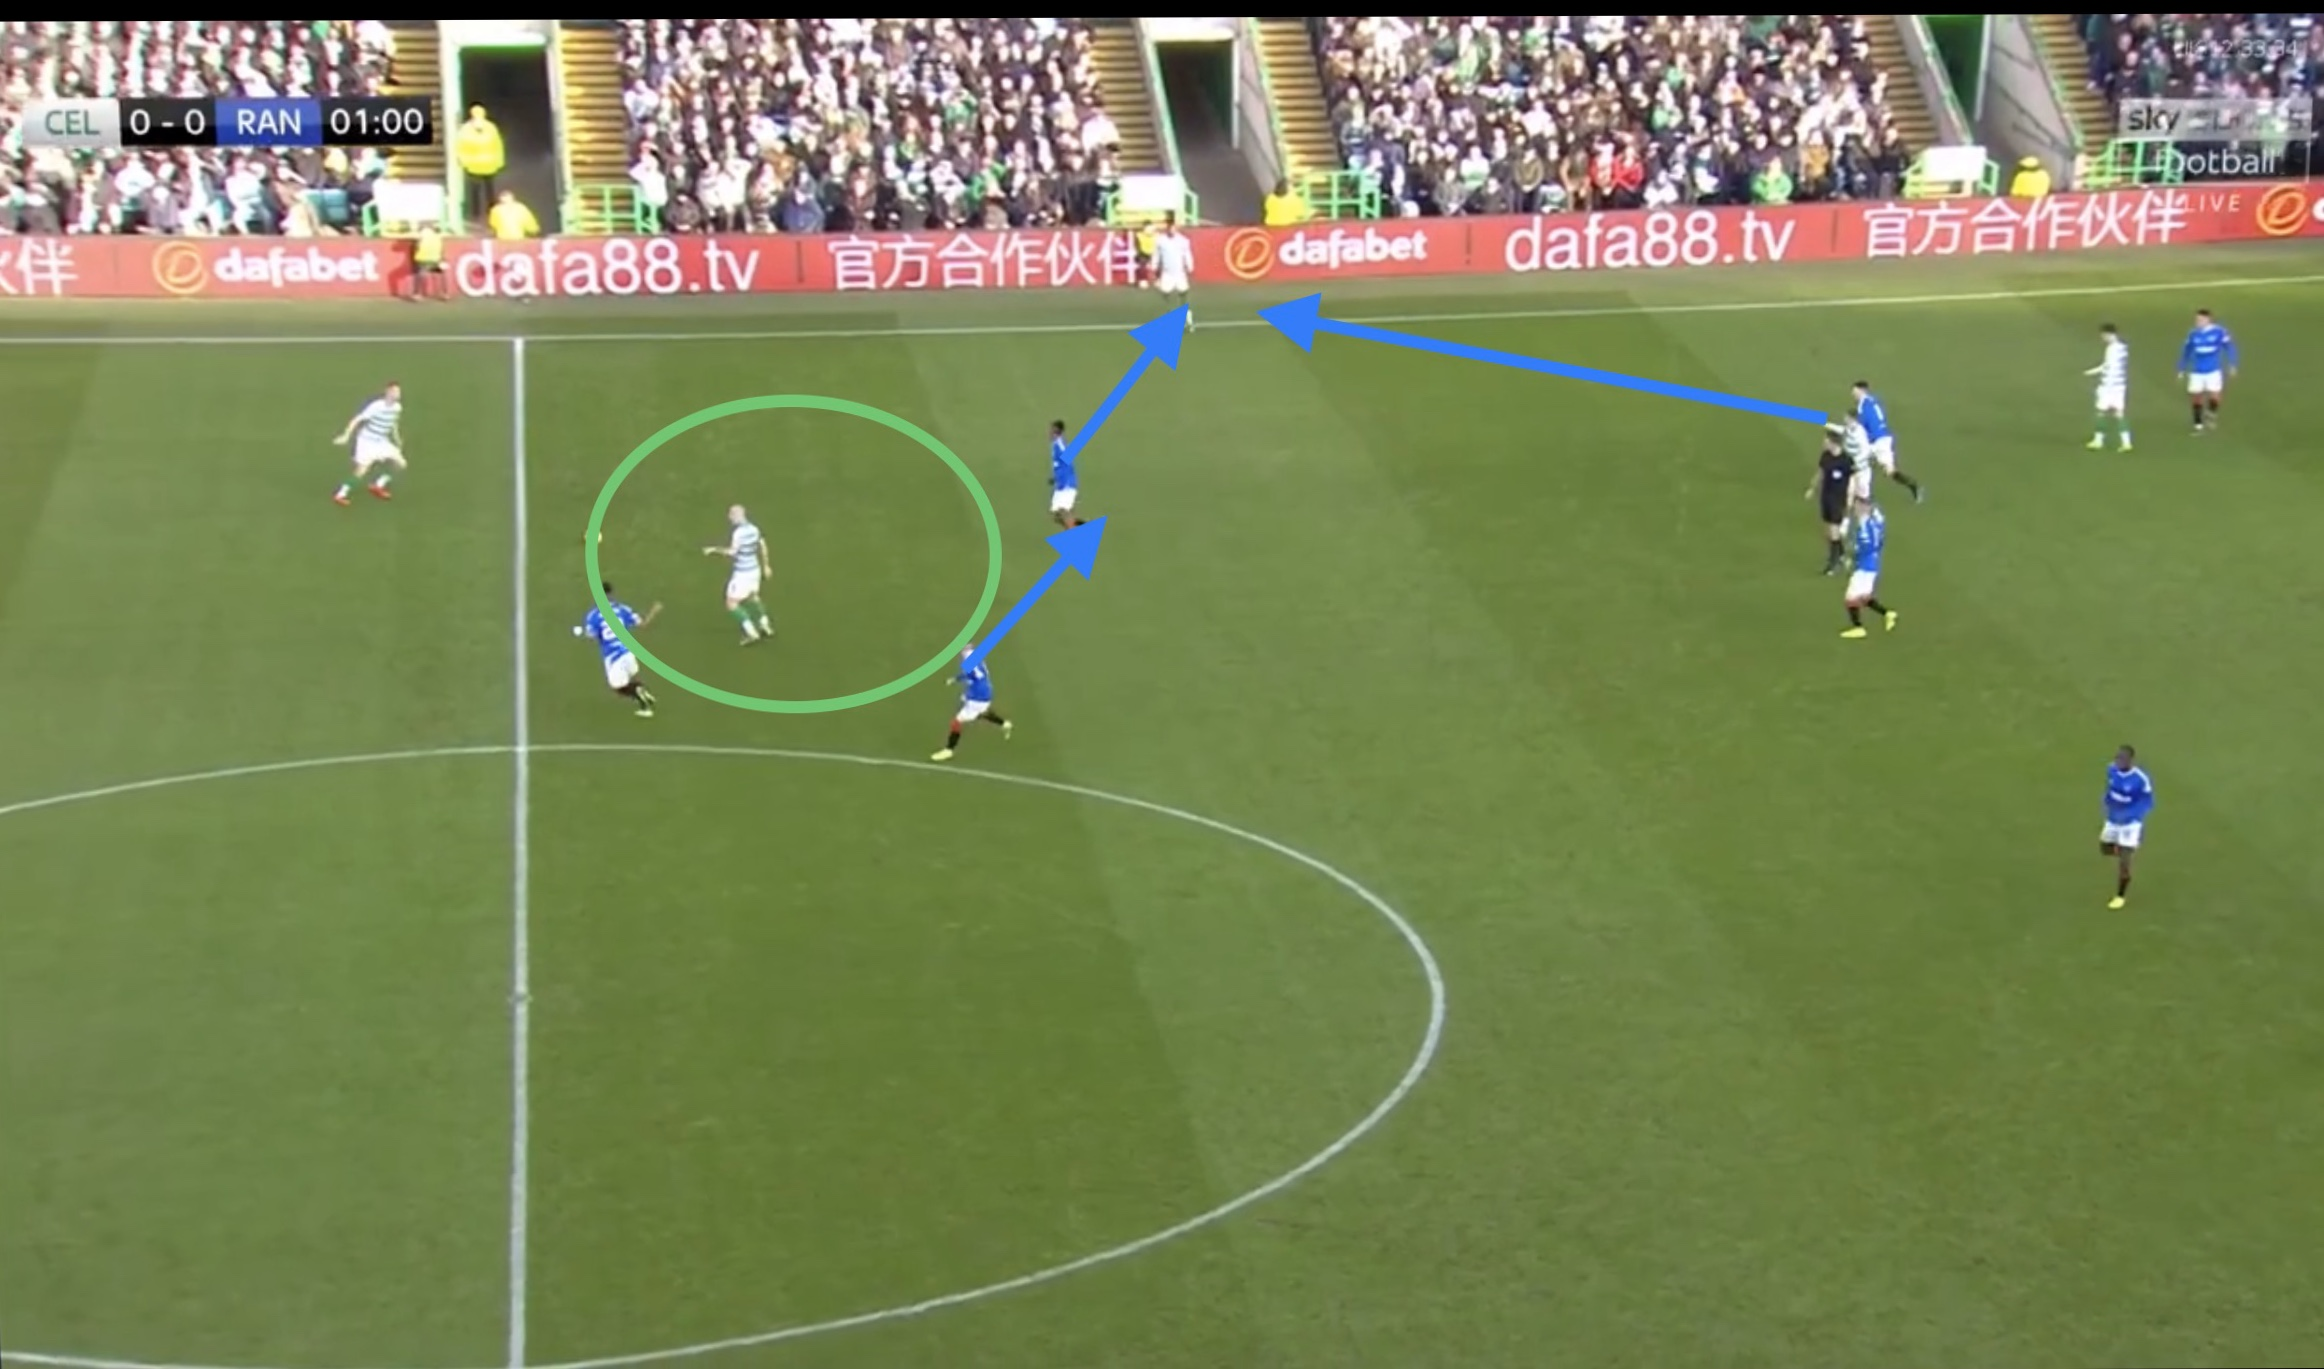 Scottish Premiership: Celtic vs Rangers - tactical analysis tactics